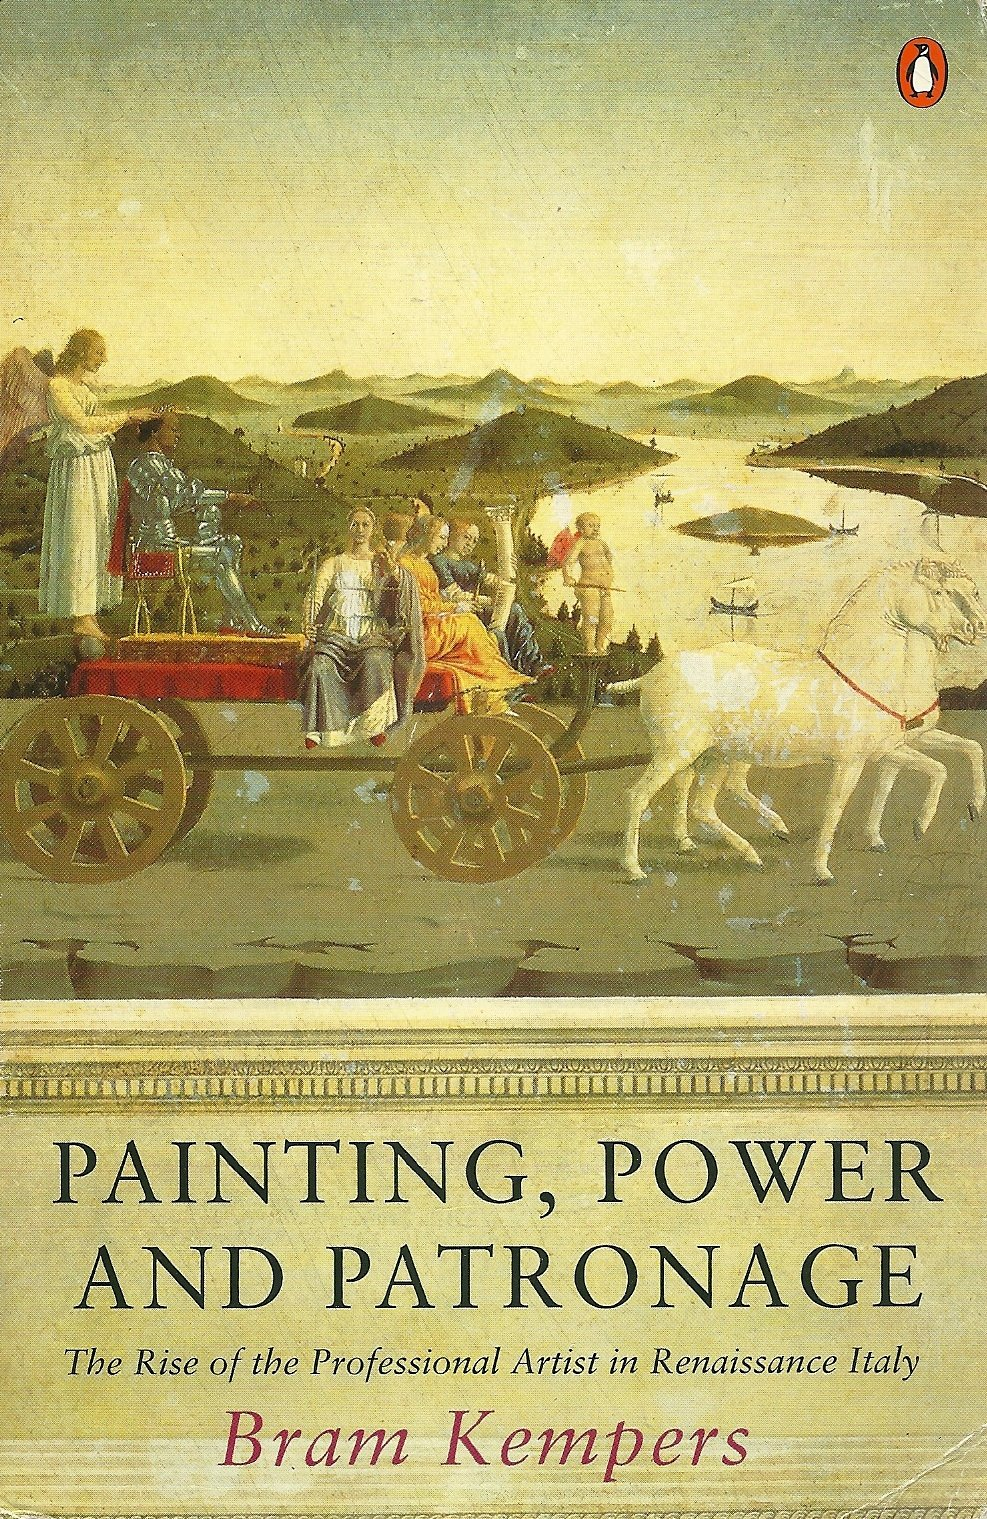 Painting, Power and Patronage: Rise of the Professional Artist in Renaissance Italy